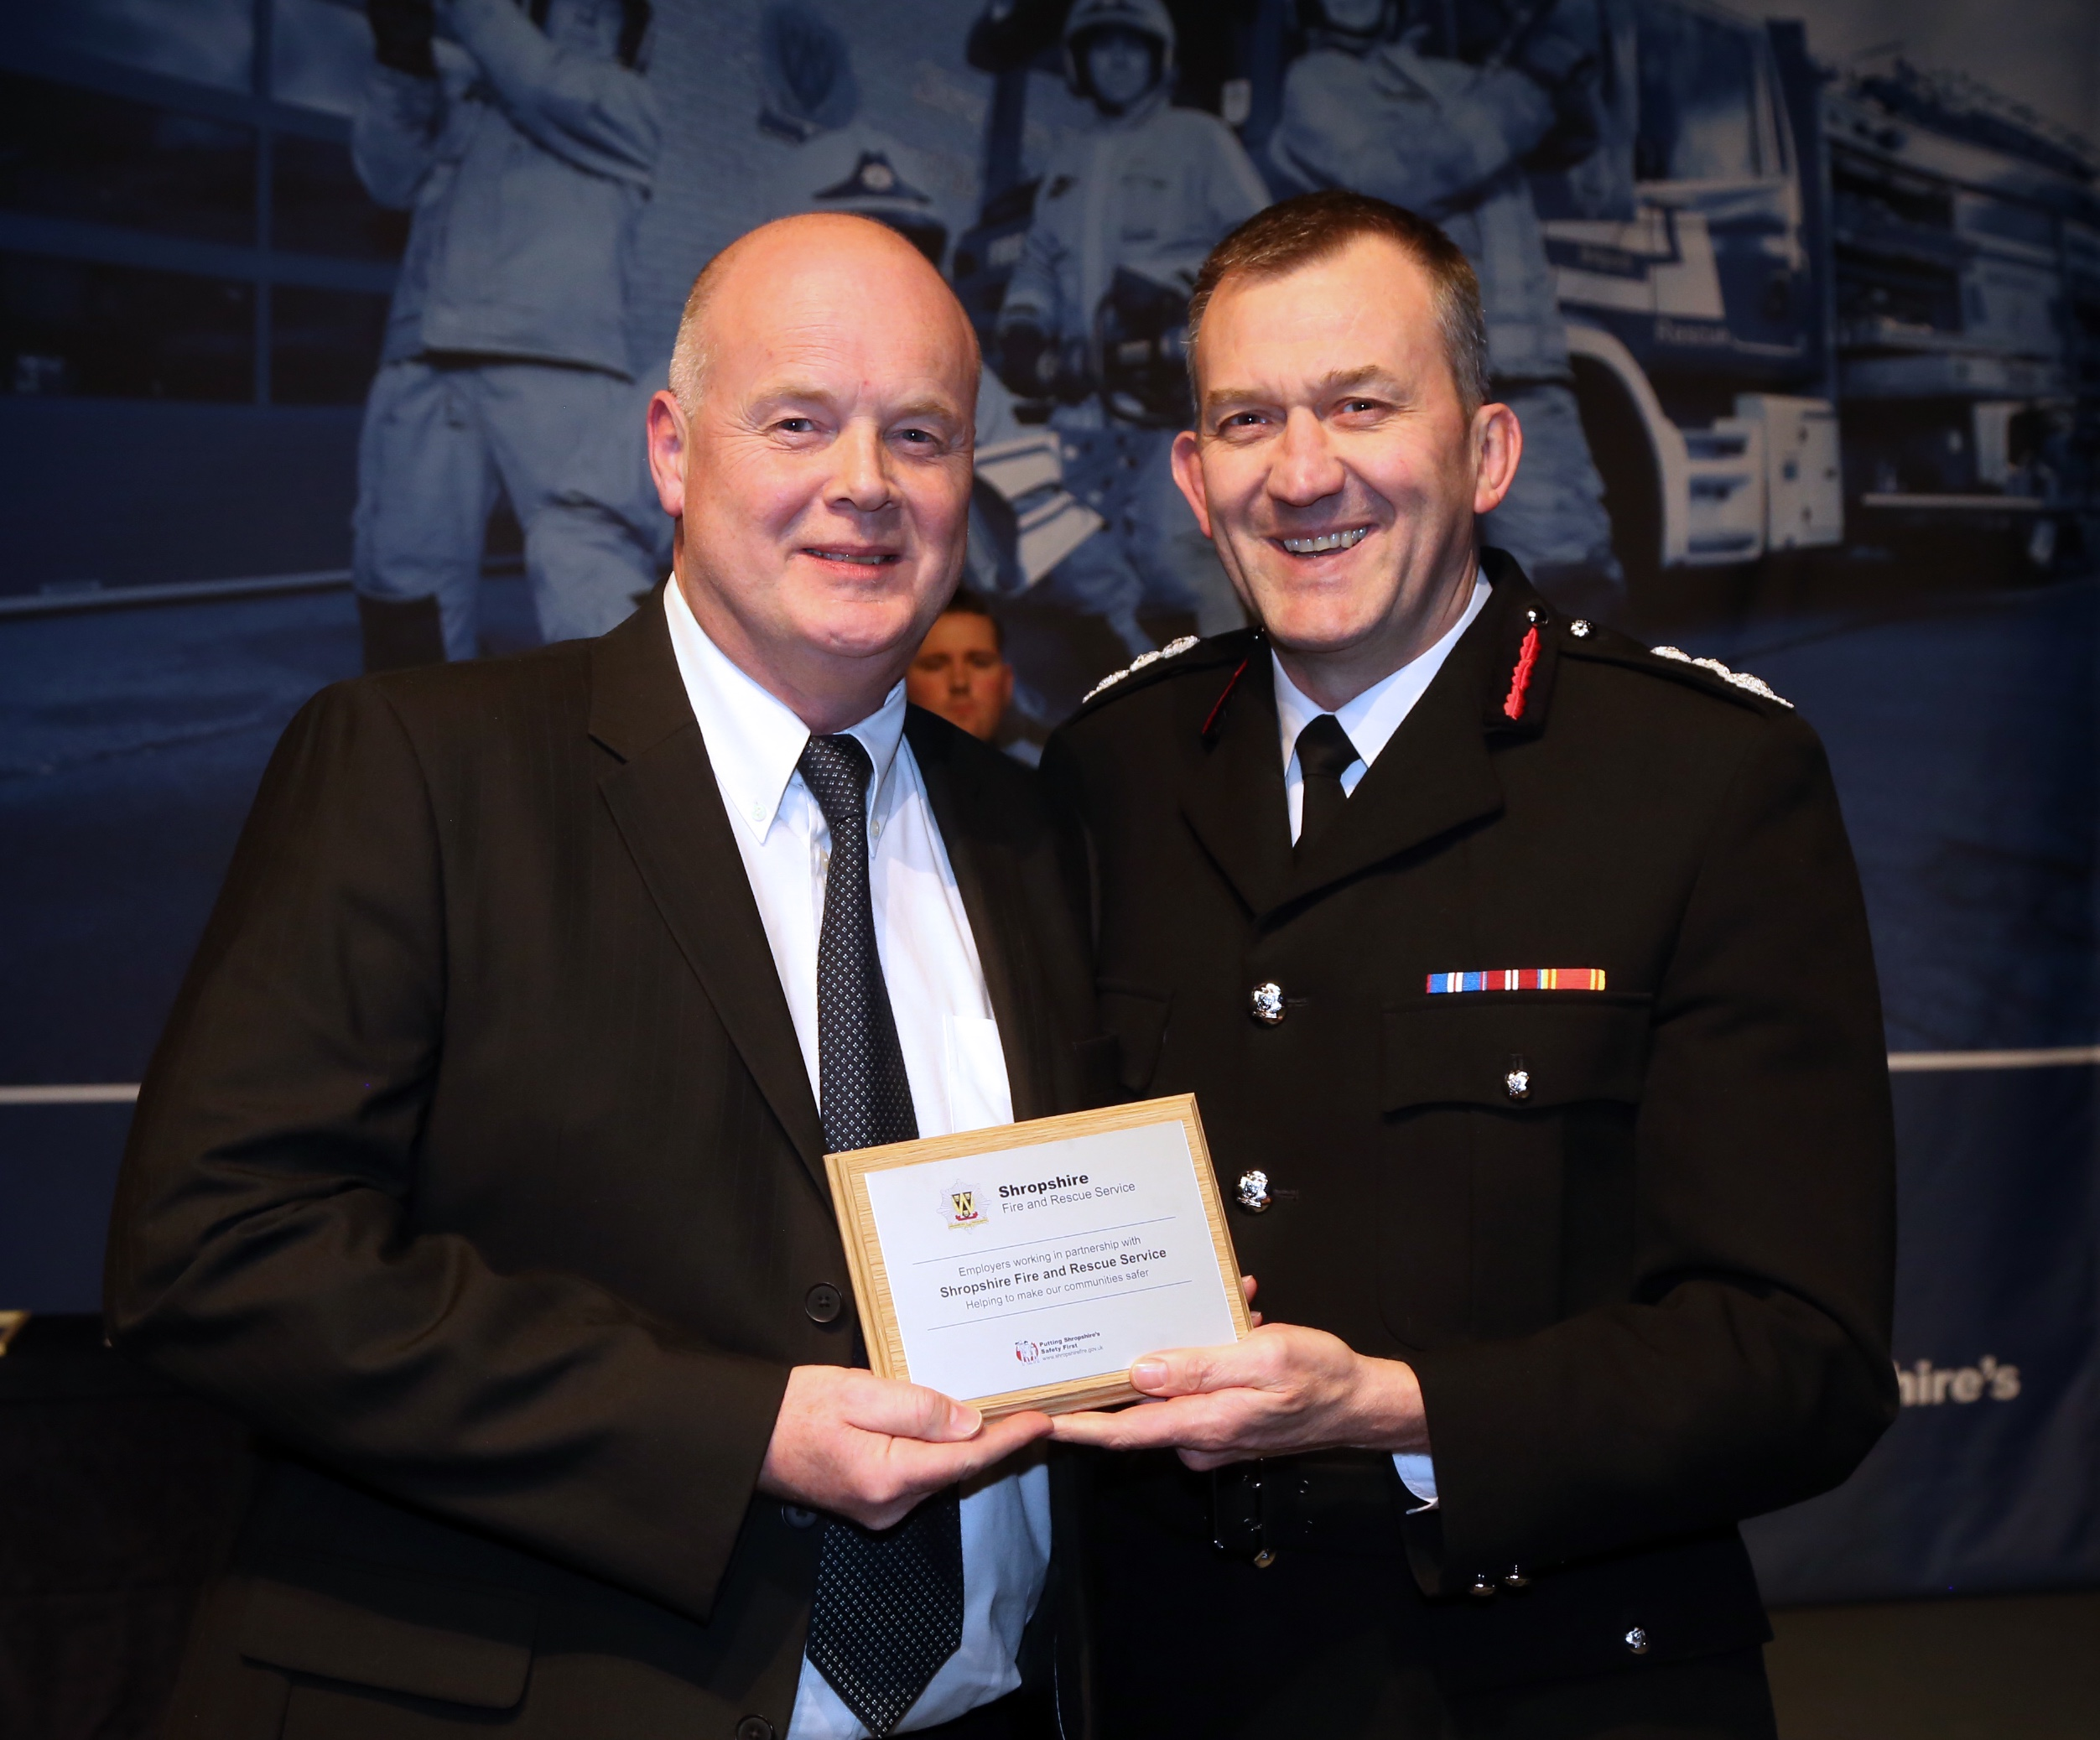 Europa Fastenings MD Stephen Cowan with the employers' award from Chief Fire Officer Rod Hammerton